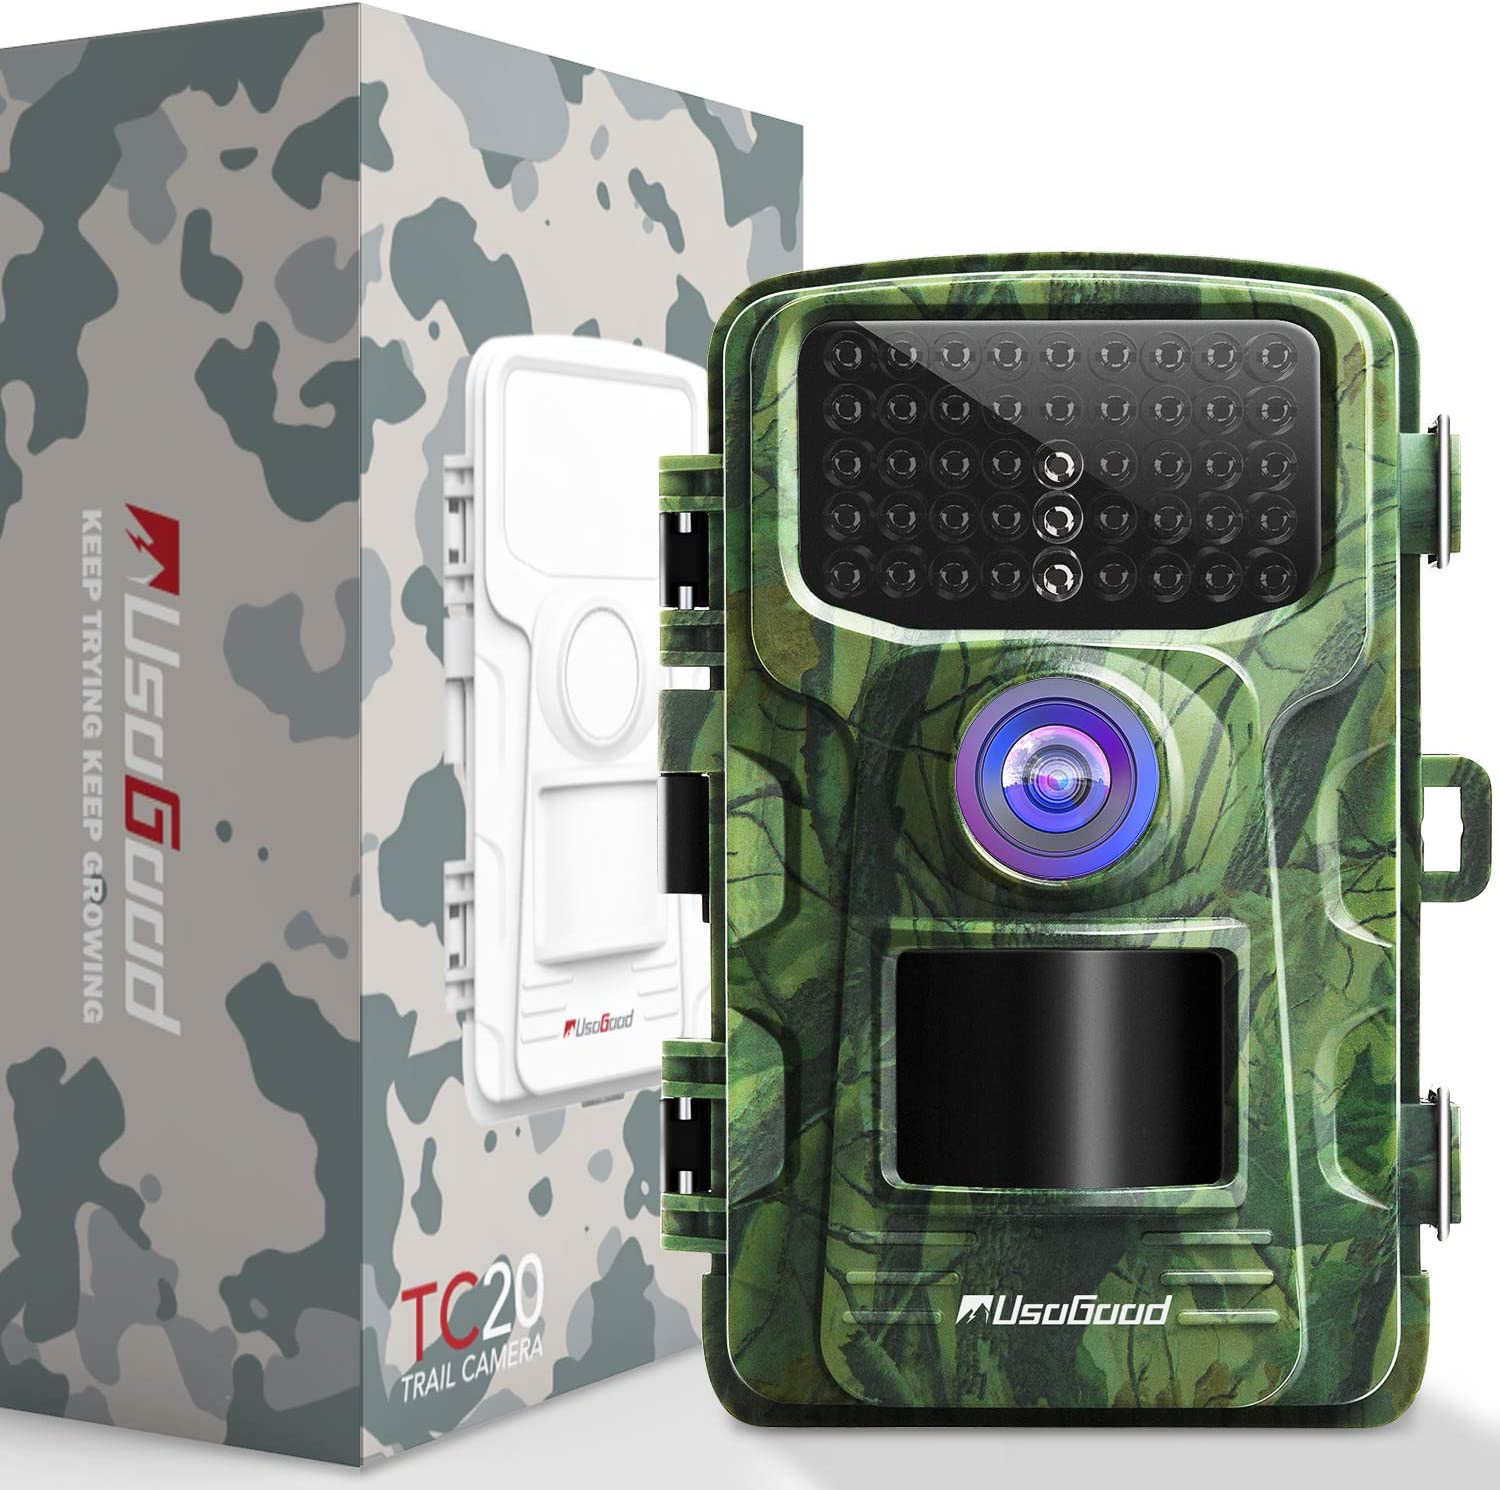 Trail Camera 14MP 1080P 2.4 LCD Game Camera with 42pcs No Glow IR LEDs Infrared Night Vision up to 75ft 20m IP66 Waterproof Hunting Camera for Wildlife Animal Scouting Digital Surveillance